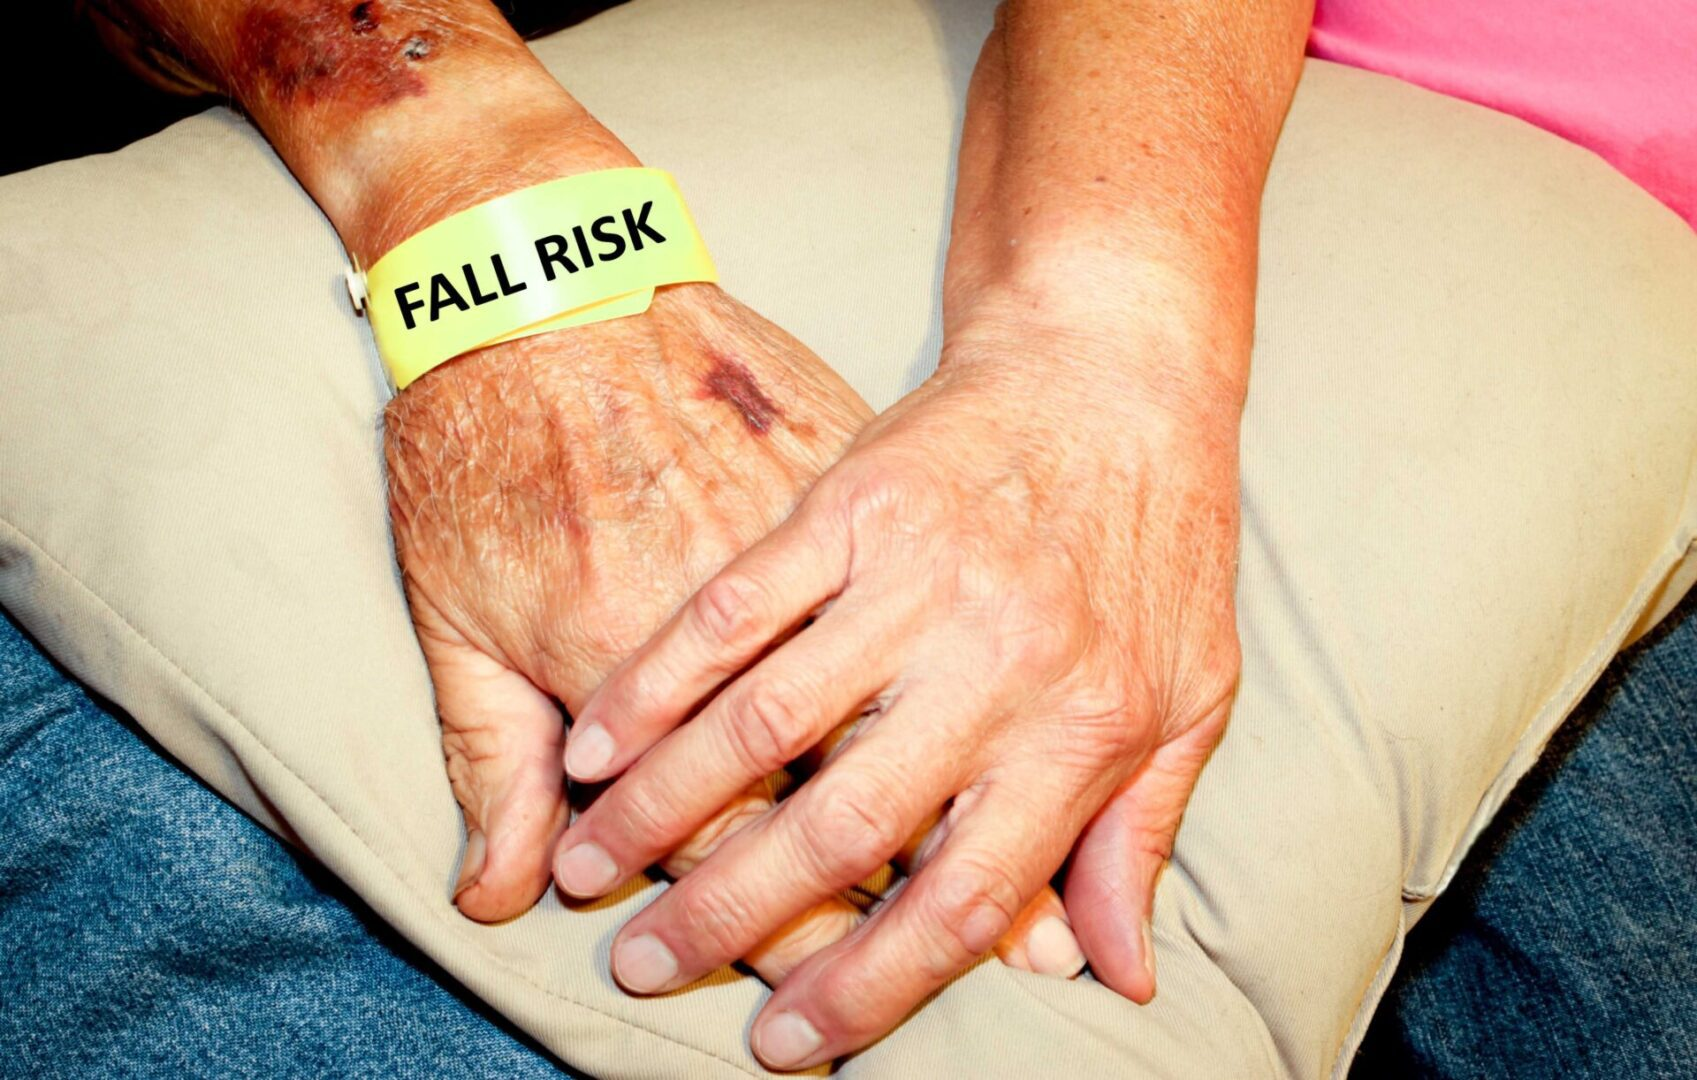 Older hand with FALL RISK yellow band being held by a youger hand on a tan pillow